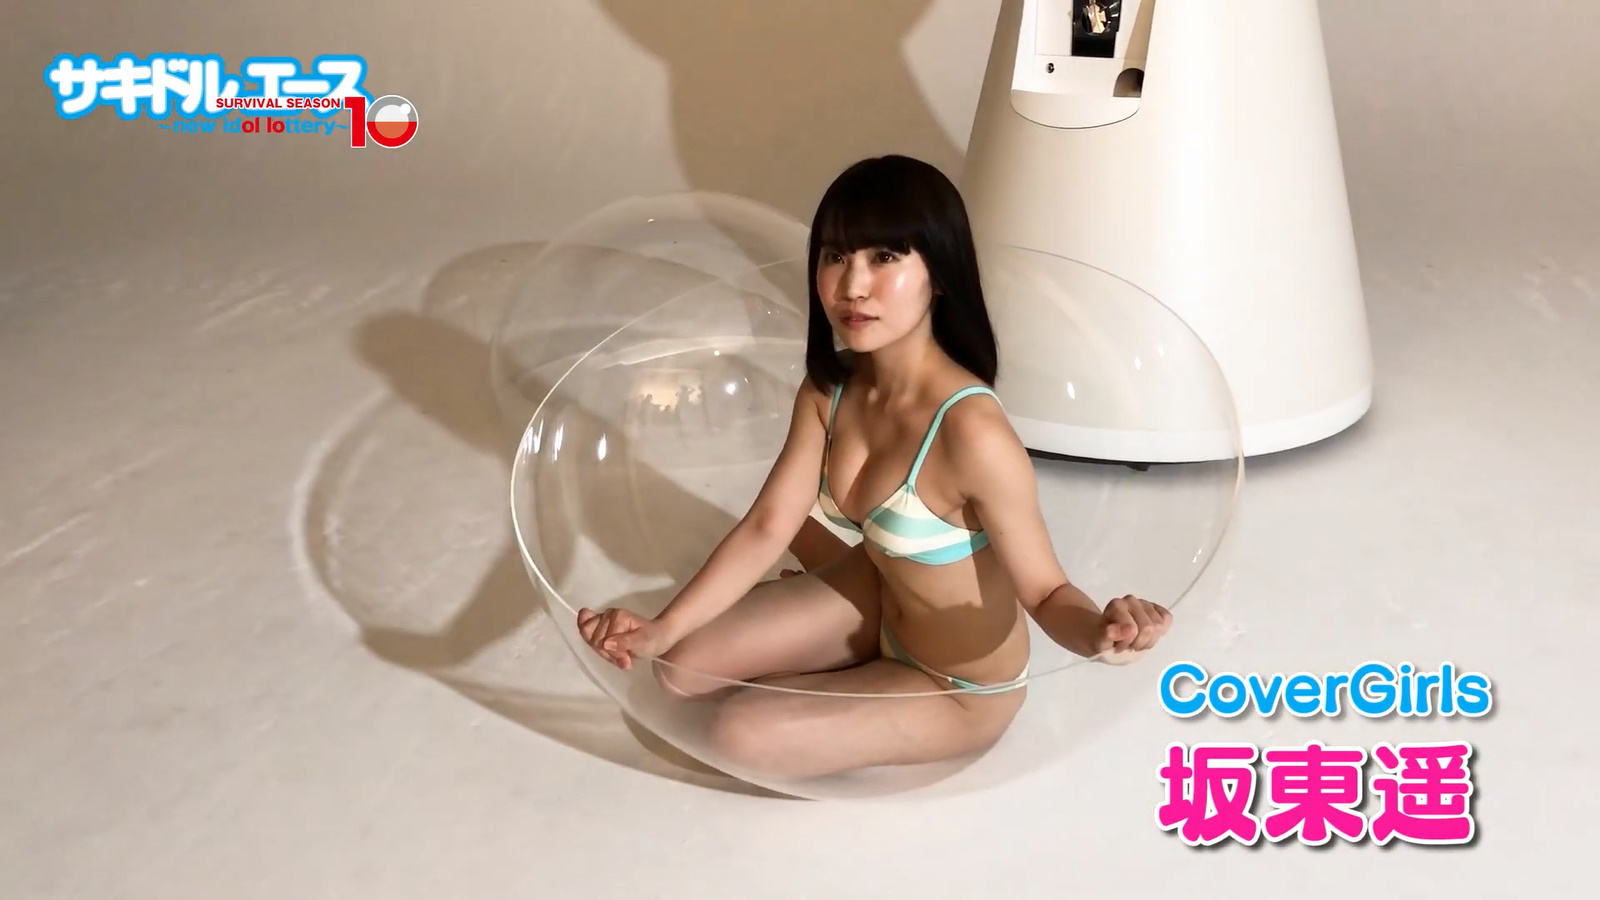 Sakidol Ace 10 Introduction Movie Capture of Swimsuit097